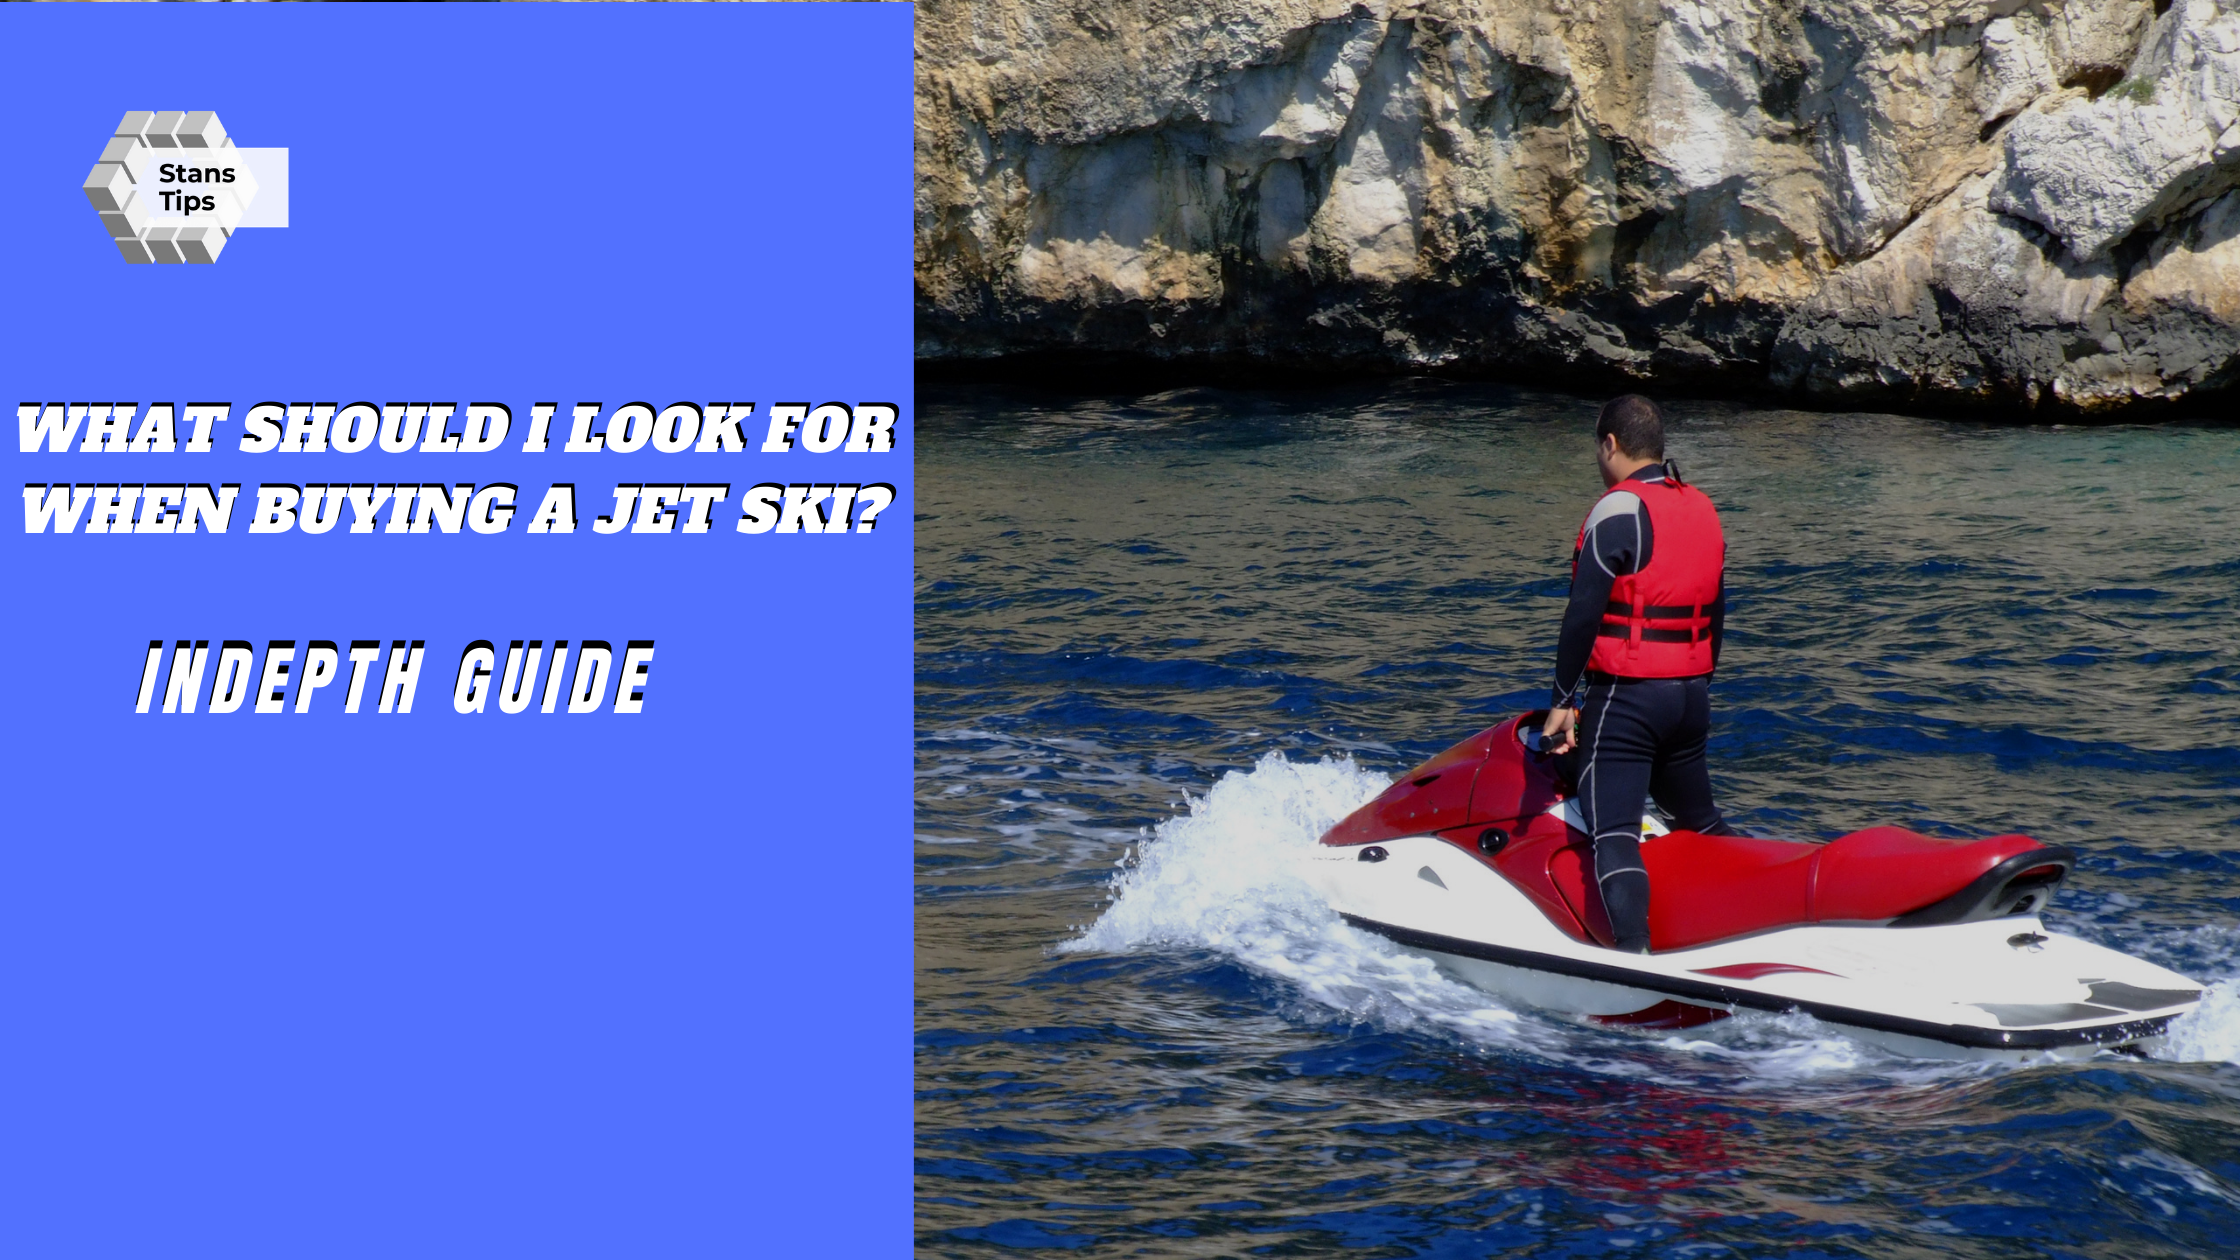 What should i look for when buying a jet ski